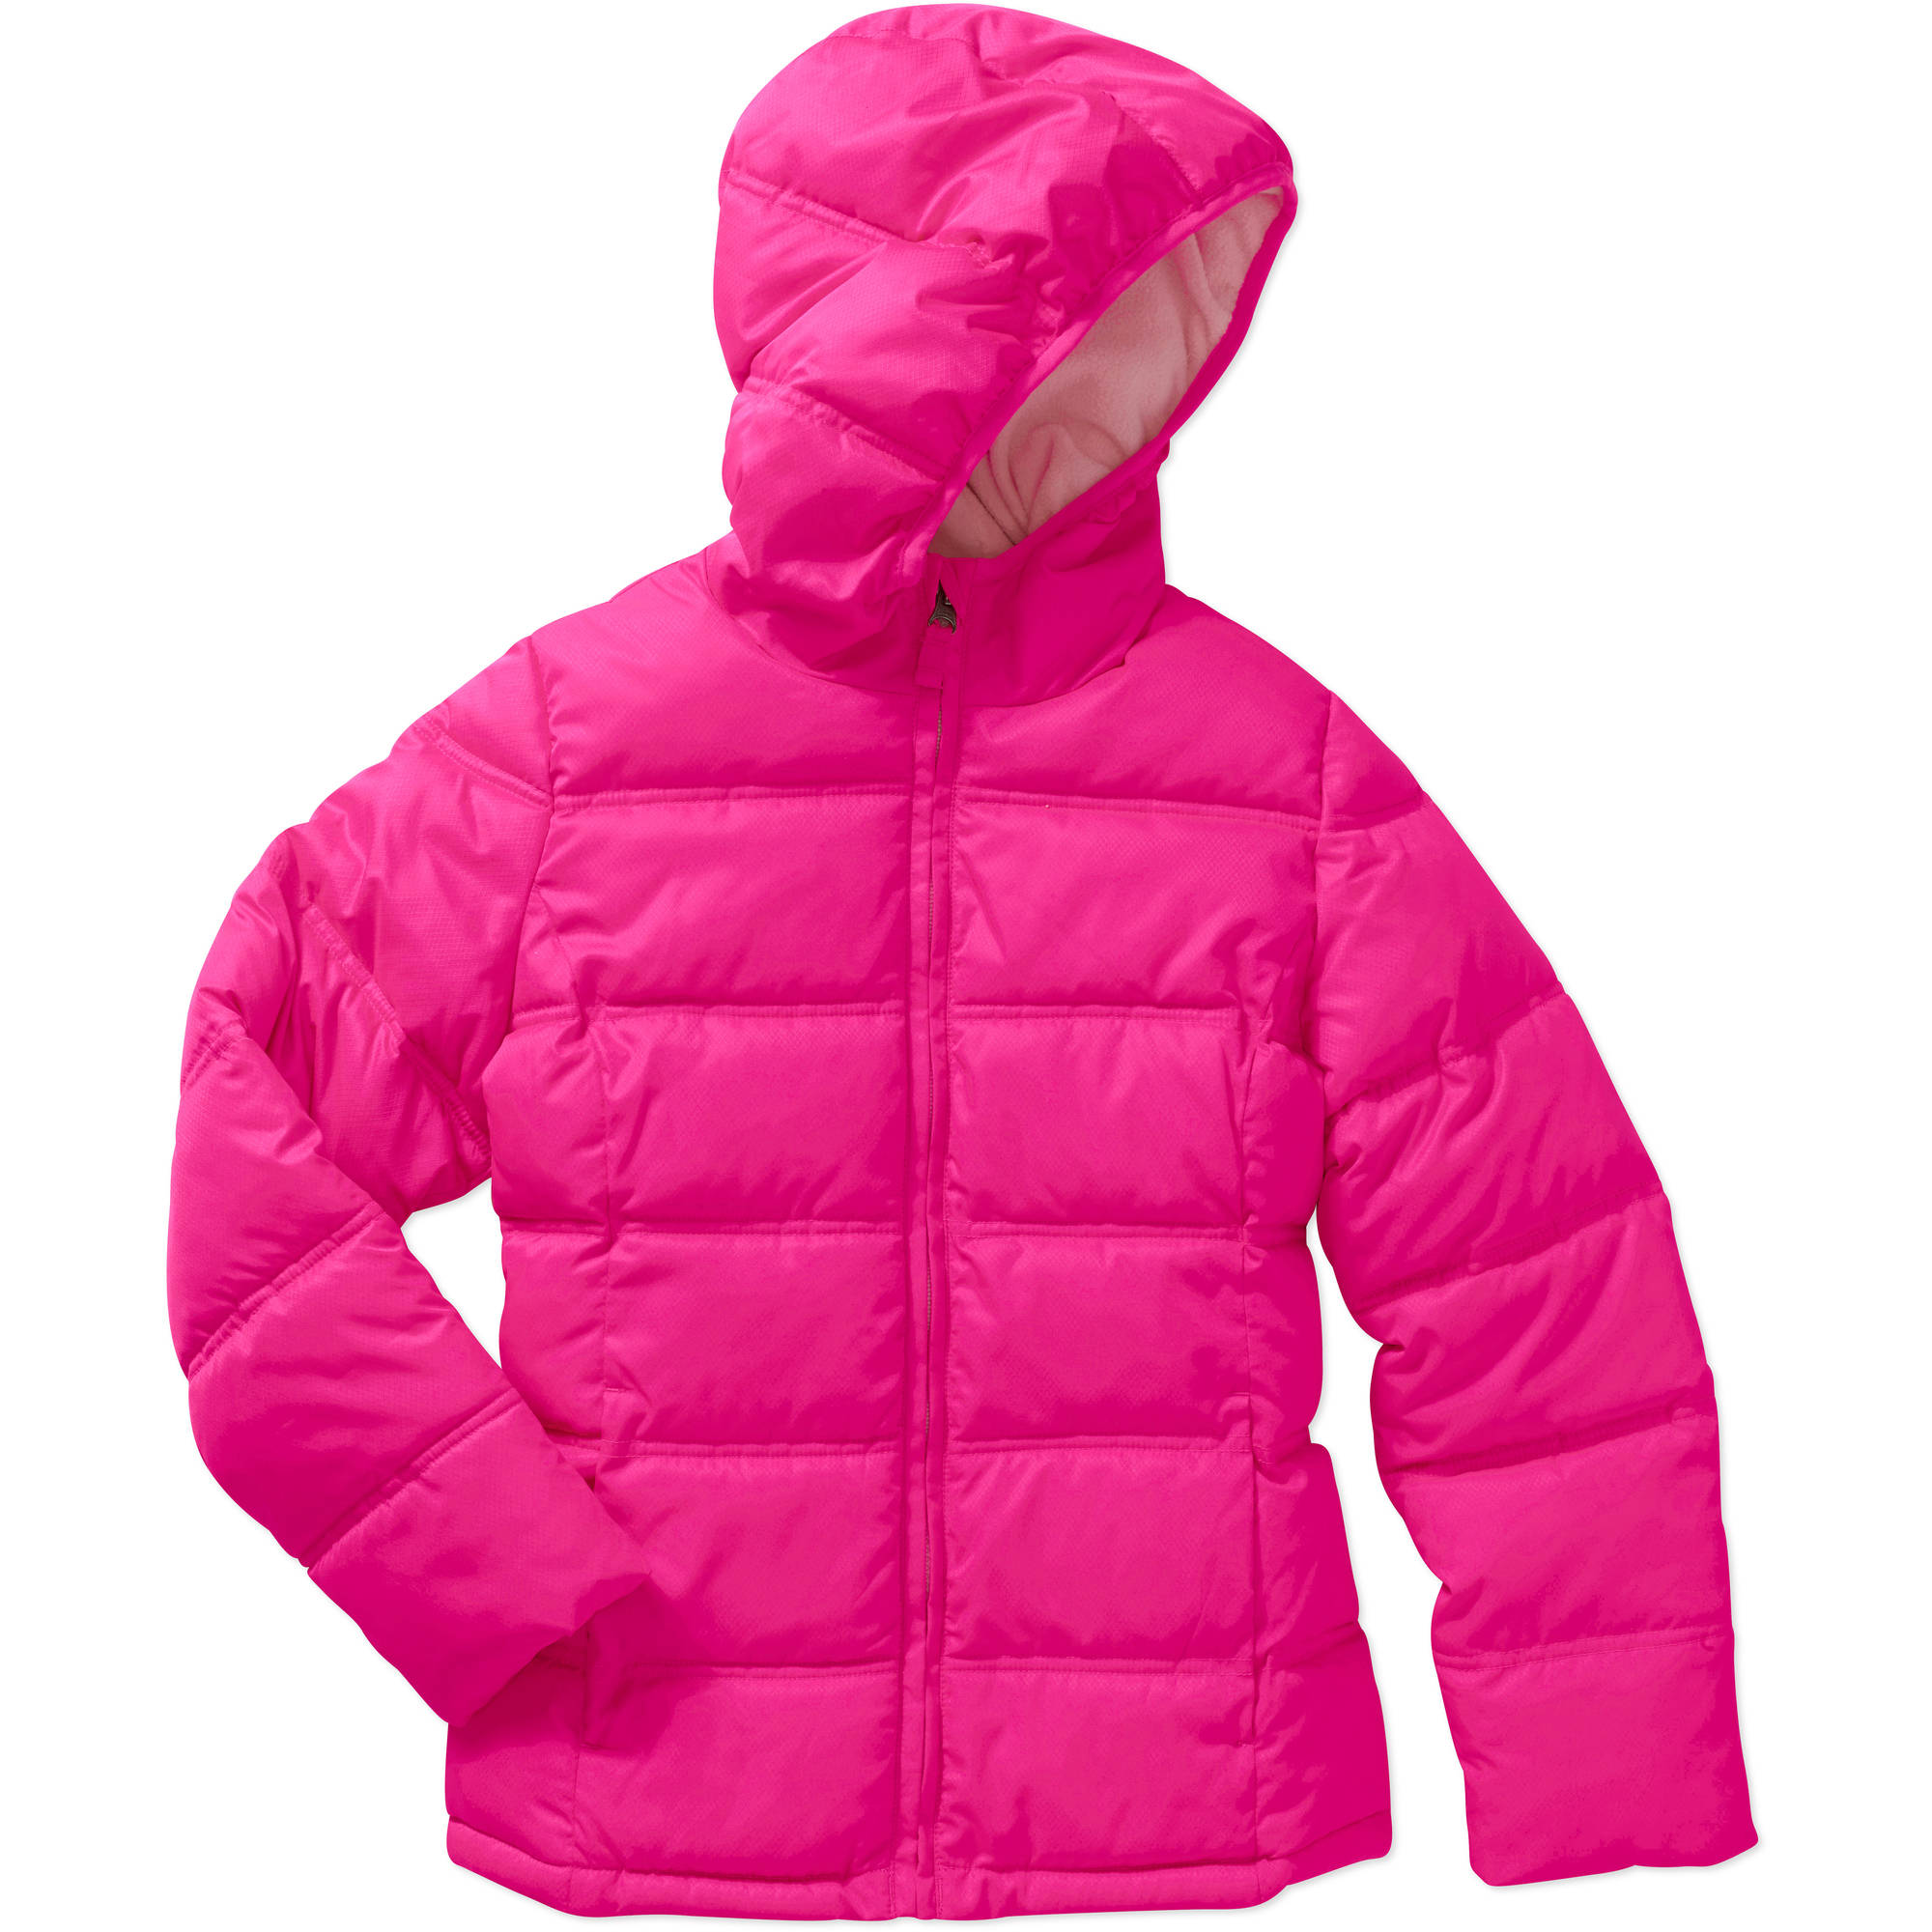 moncler pink bubble coat